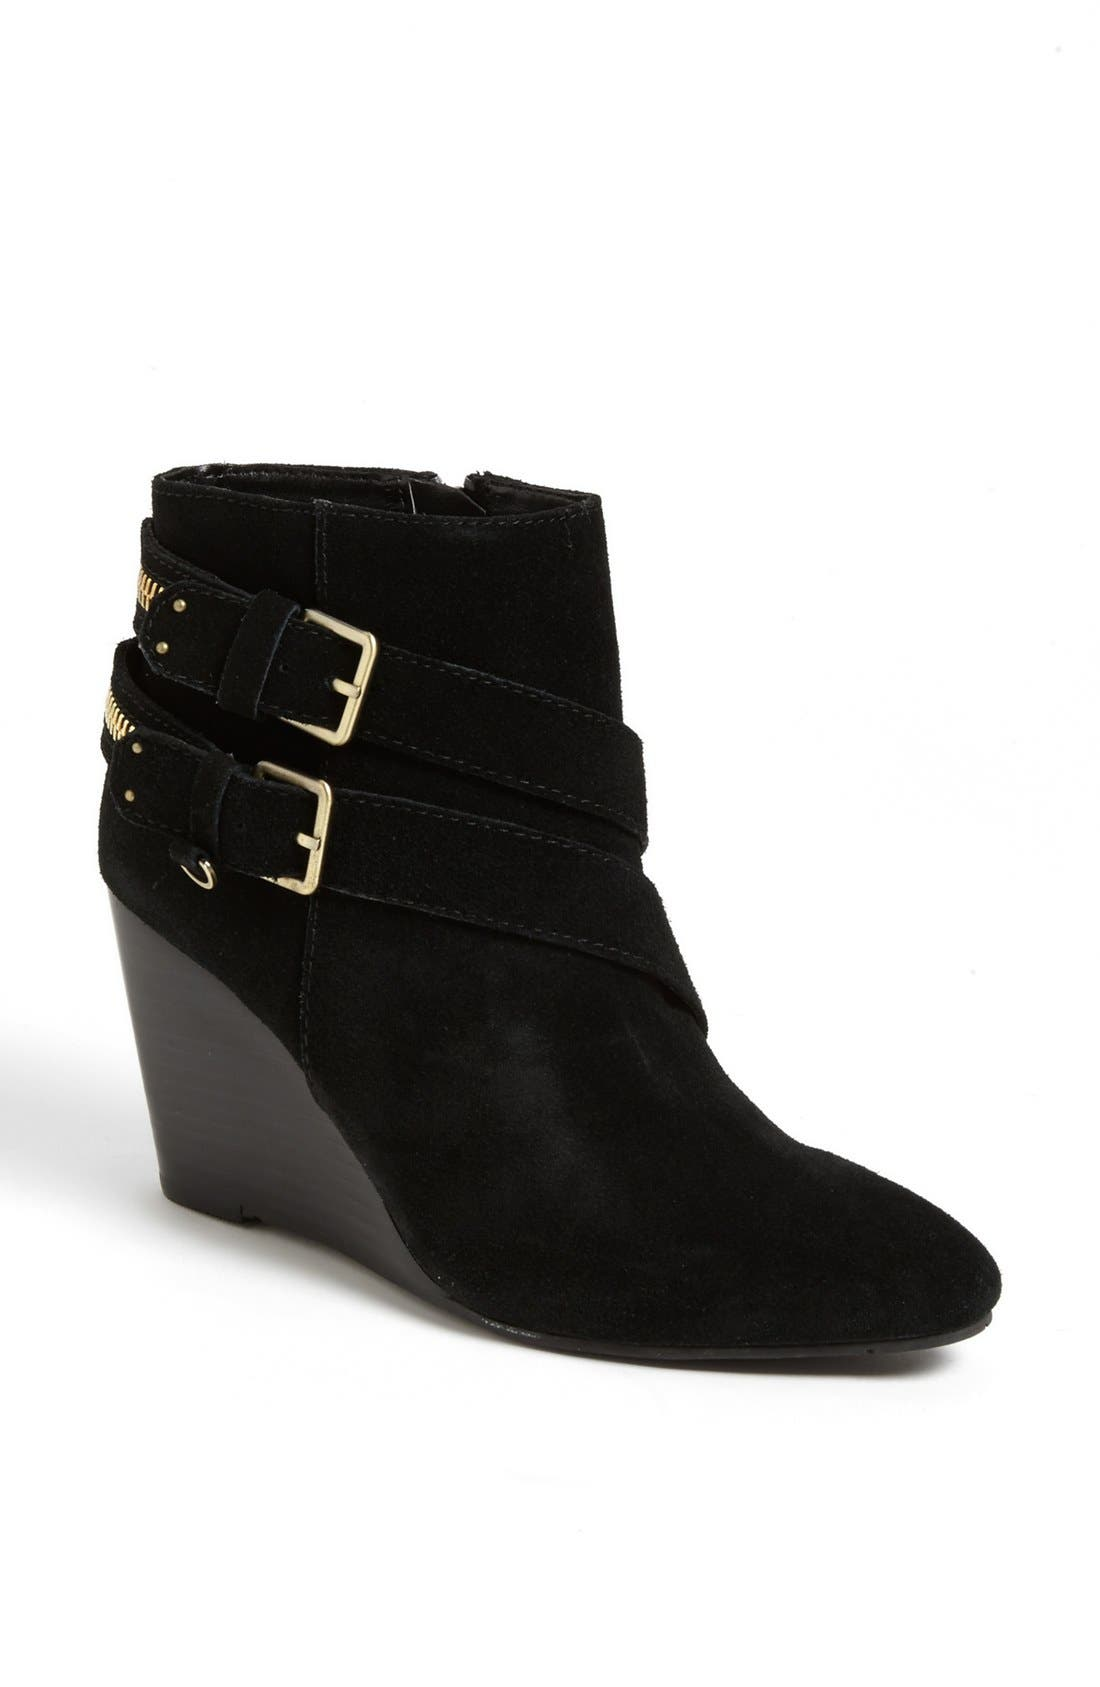 Alternate Image 1 Selected - DV by Dolce Vita 'Paden' Wedge Bootie